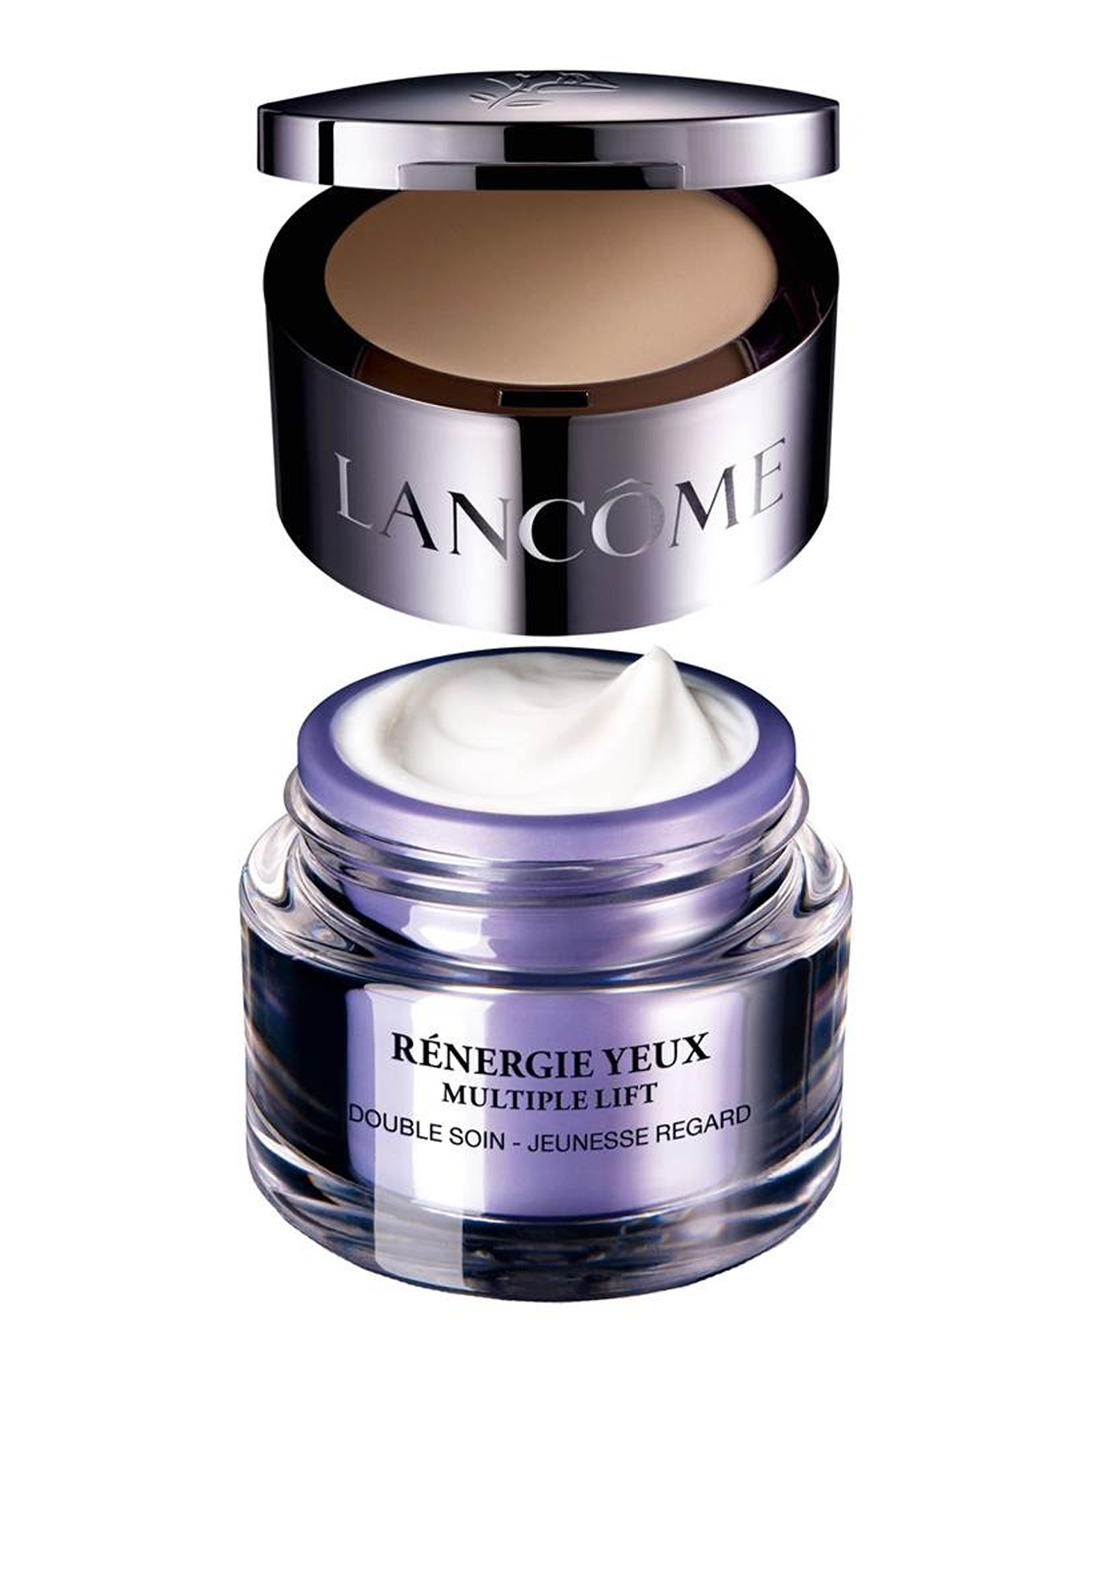 Lancome Renergie Yeux Multi-Lift Eye Cream, 15ml